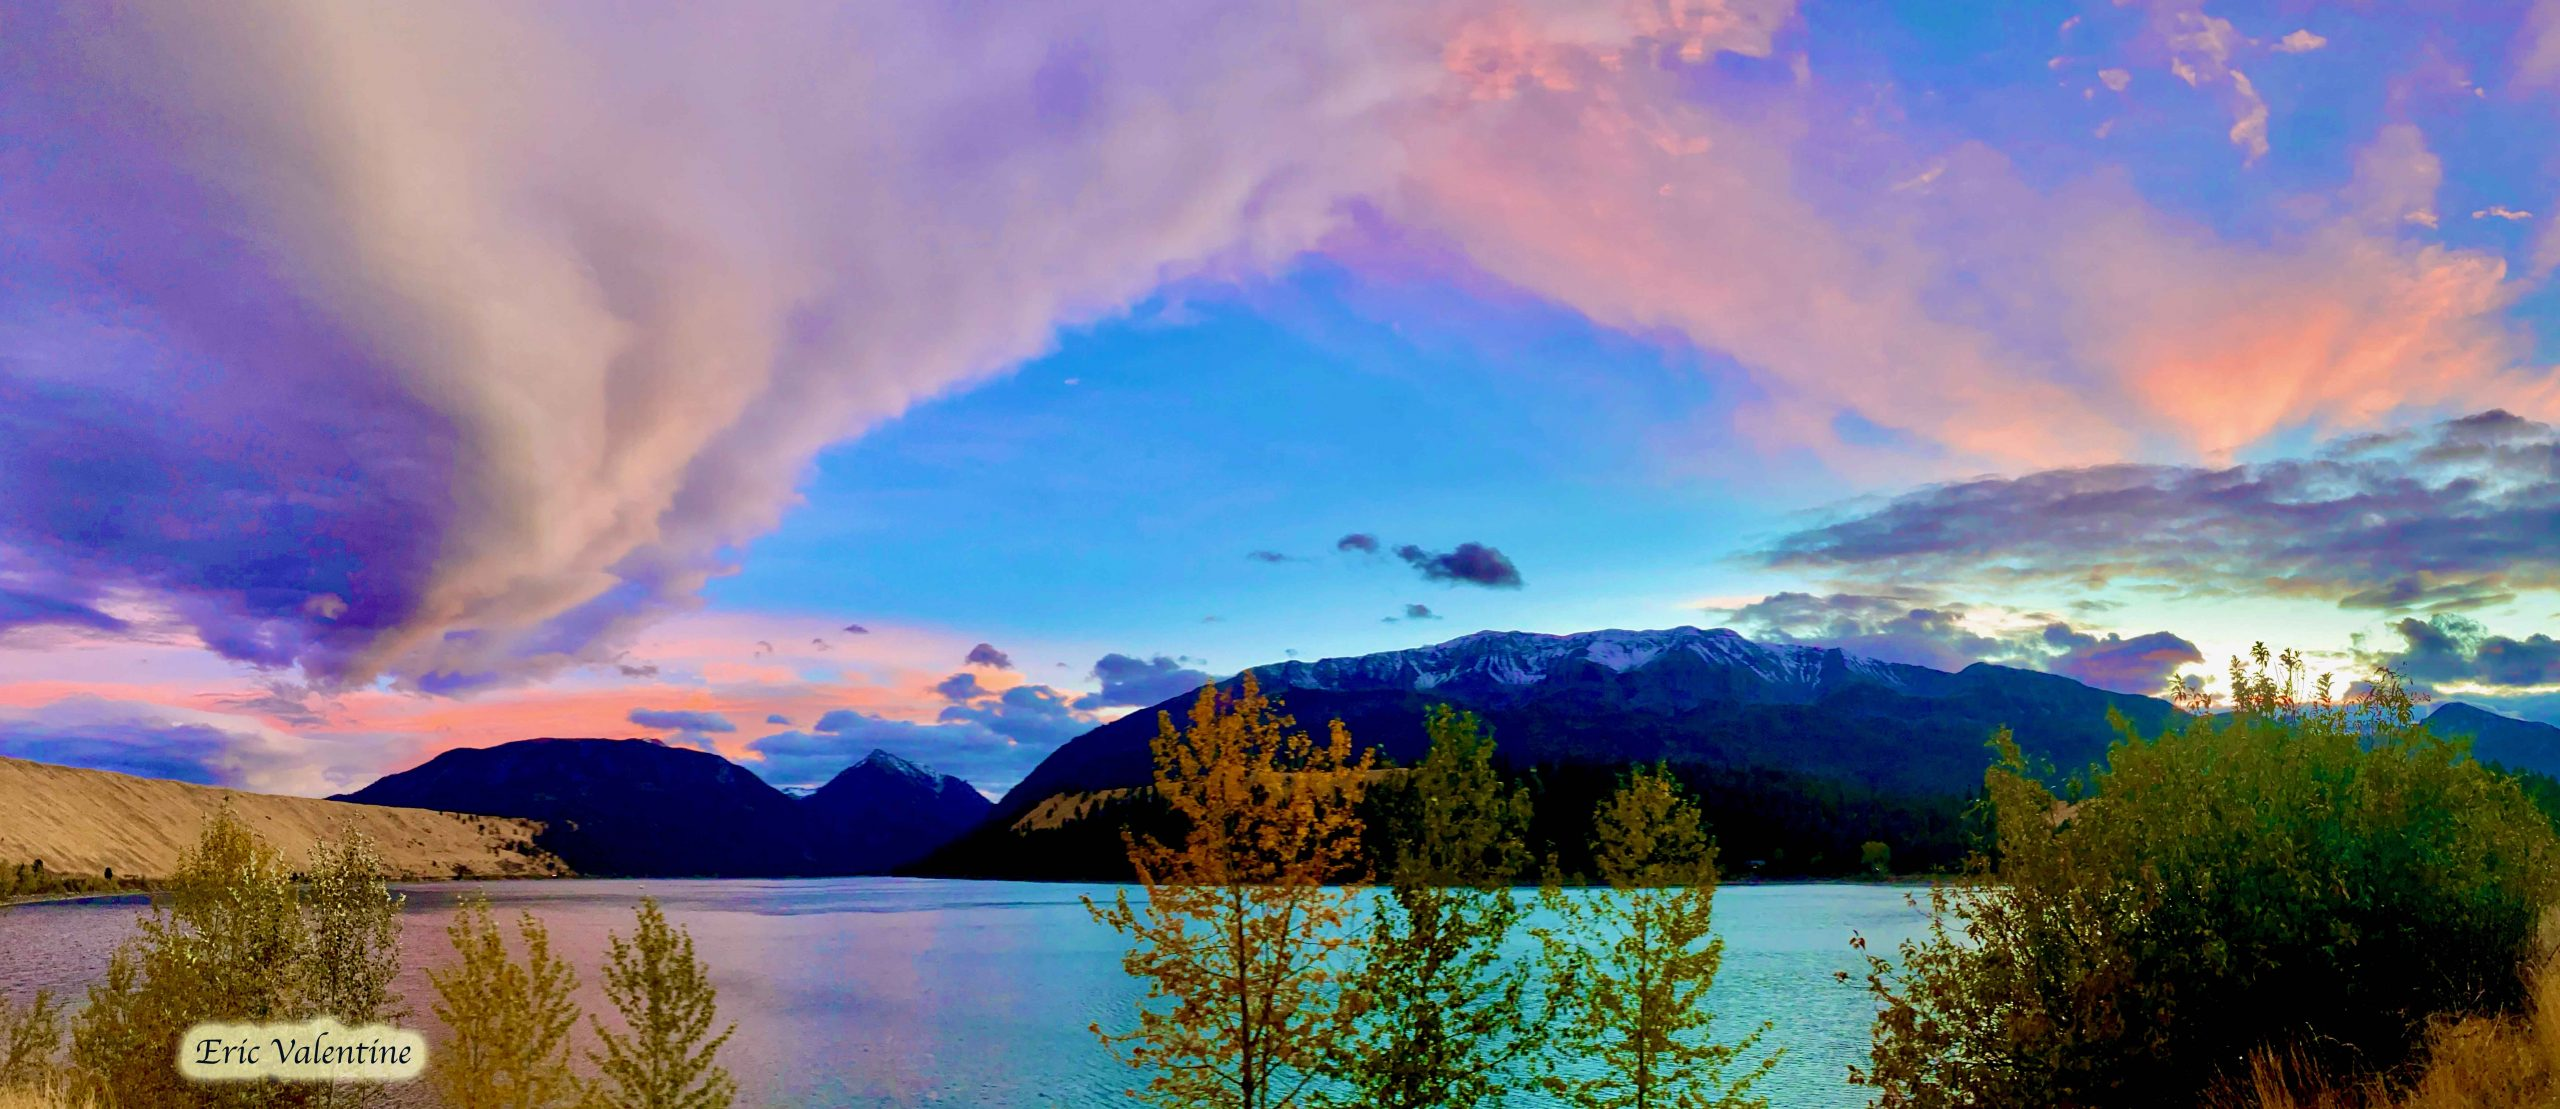 Wallowa lake pano scaled